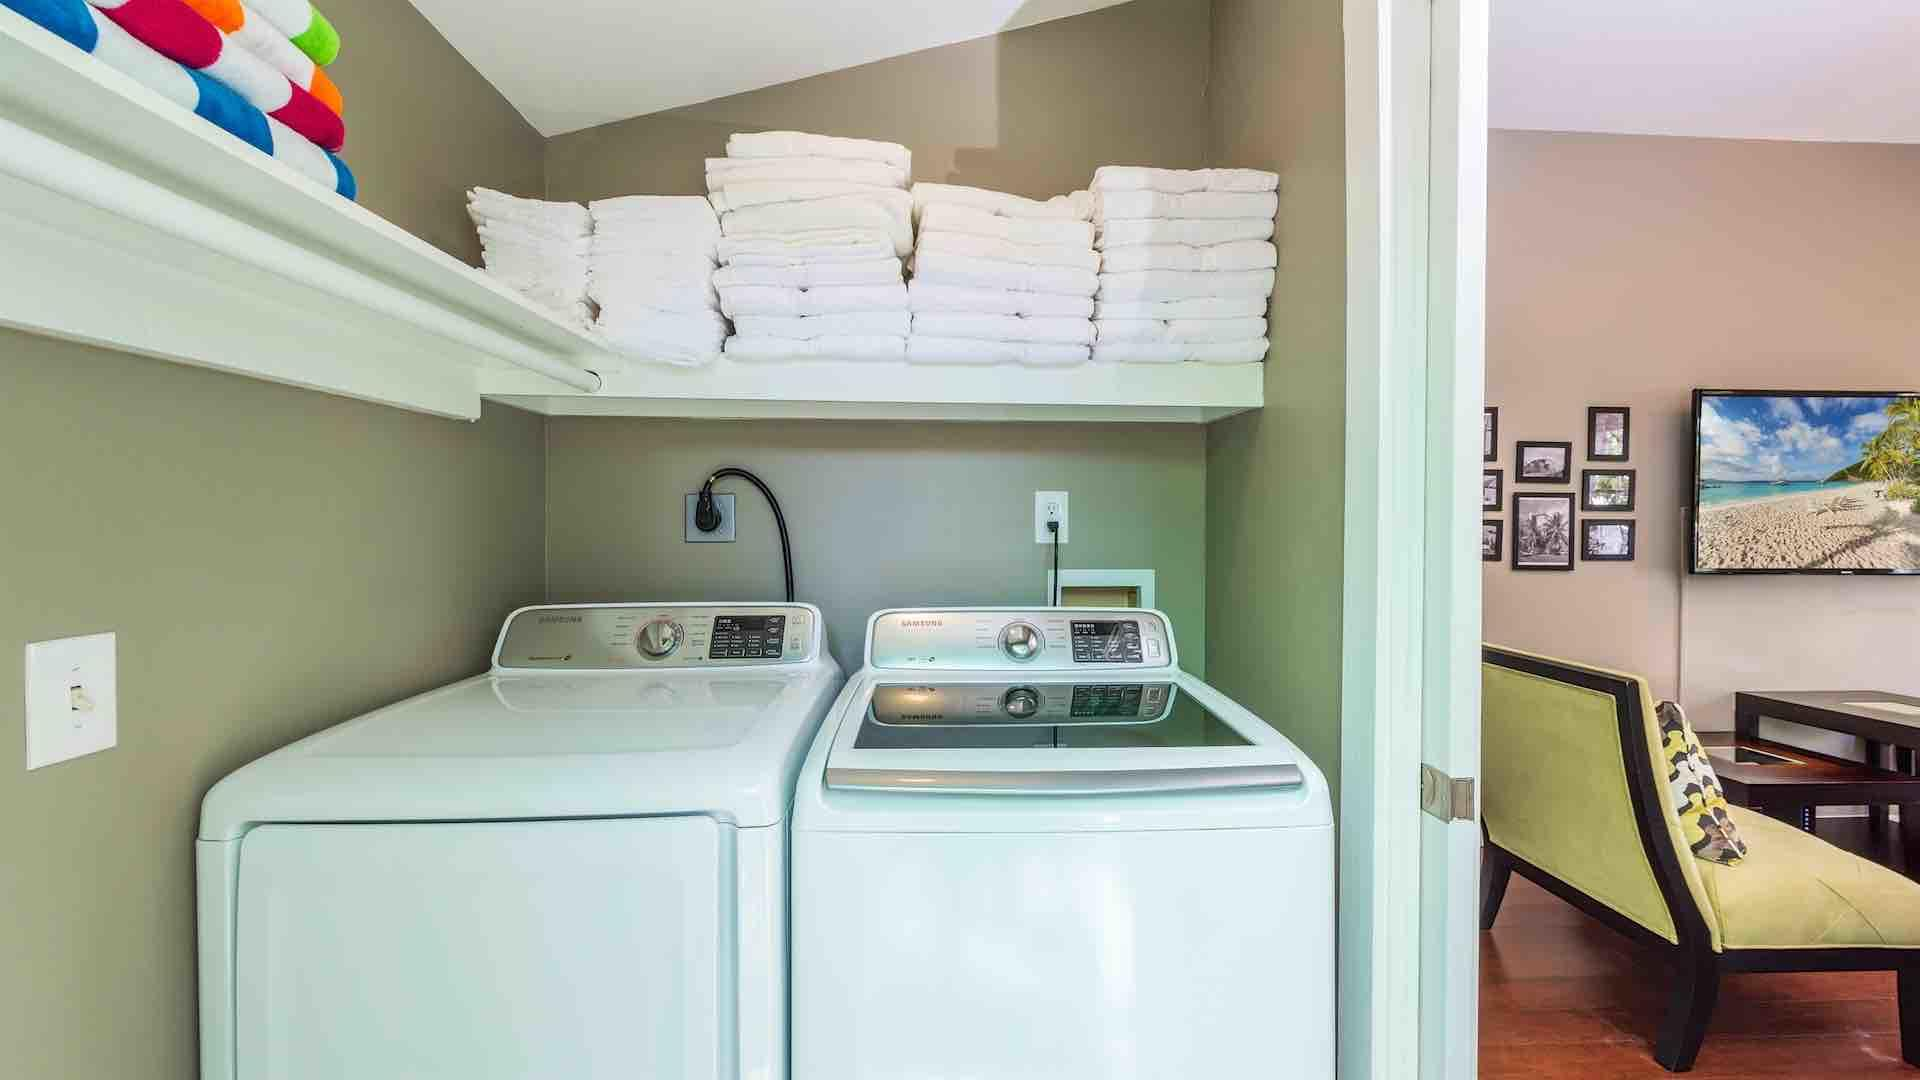 The laundry room has a washer and dryer, as well as extra towels...